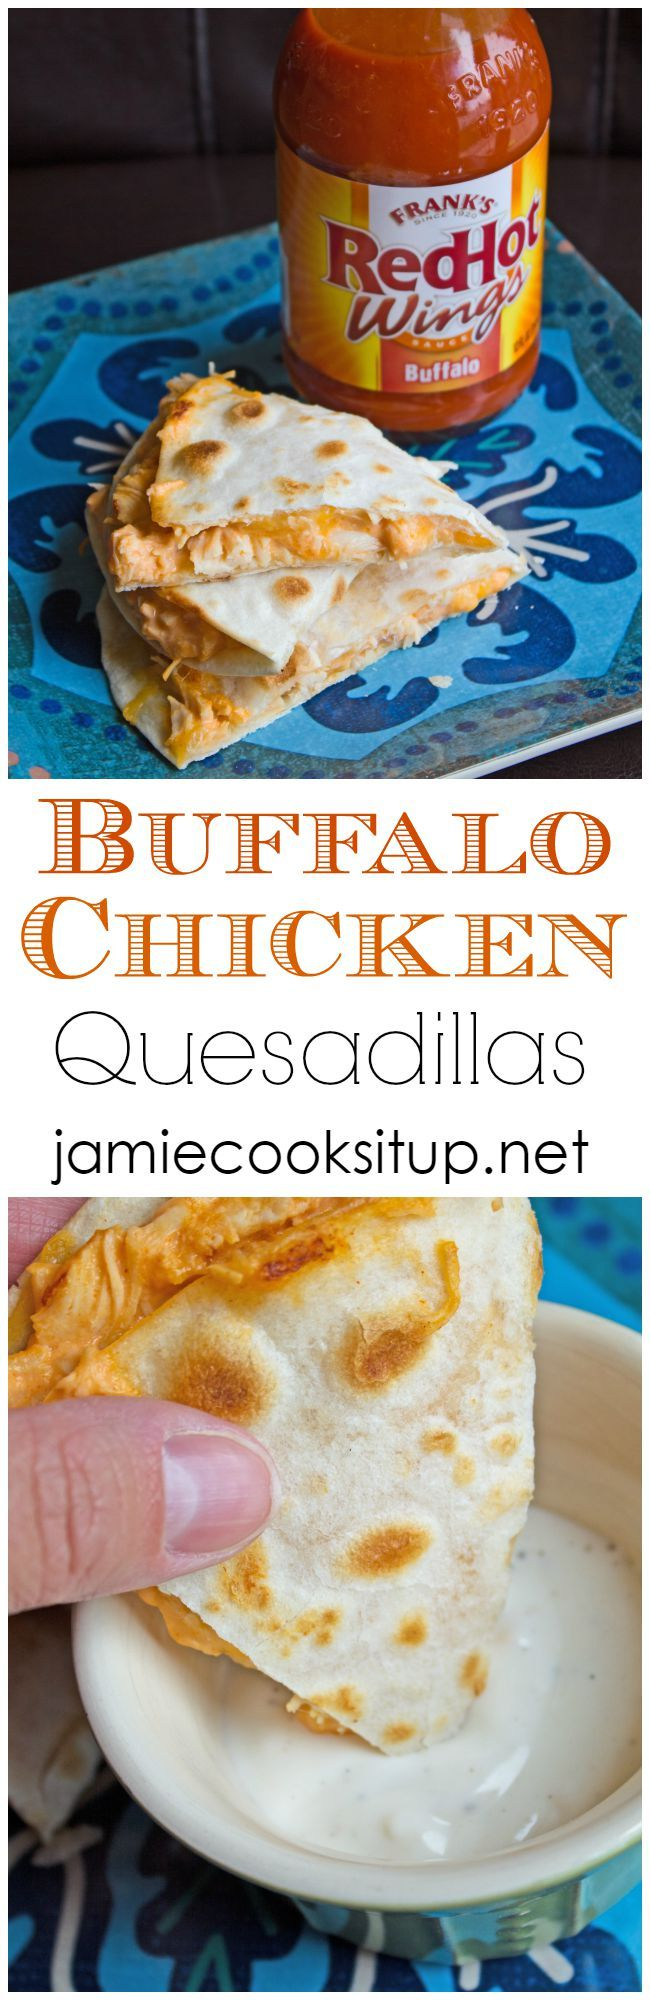 Buffalo chichen quesadillas